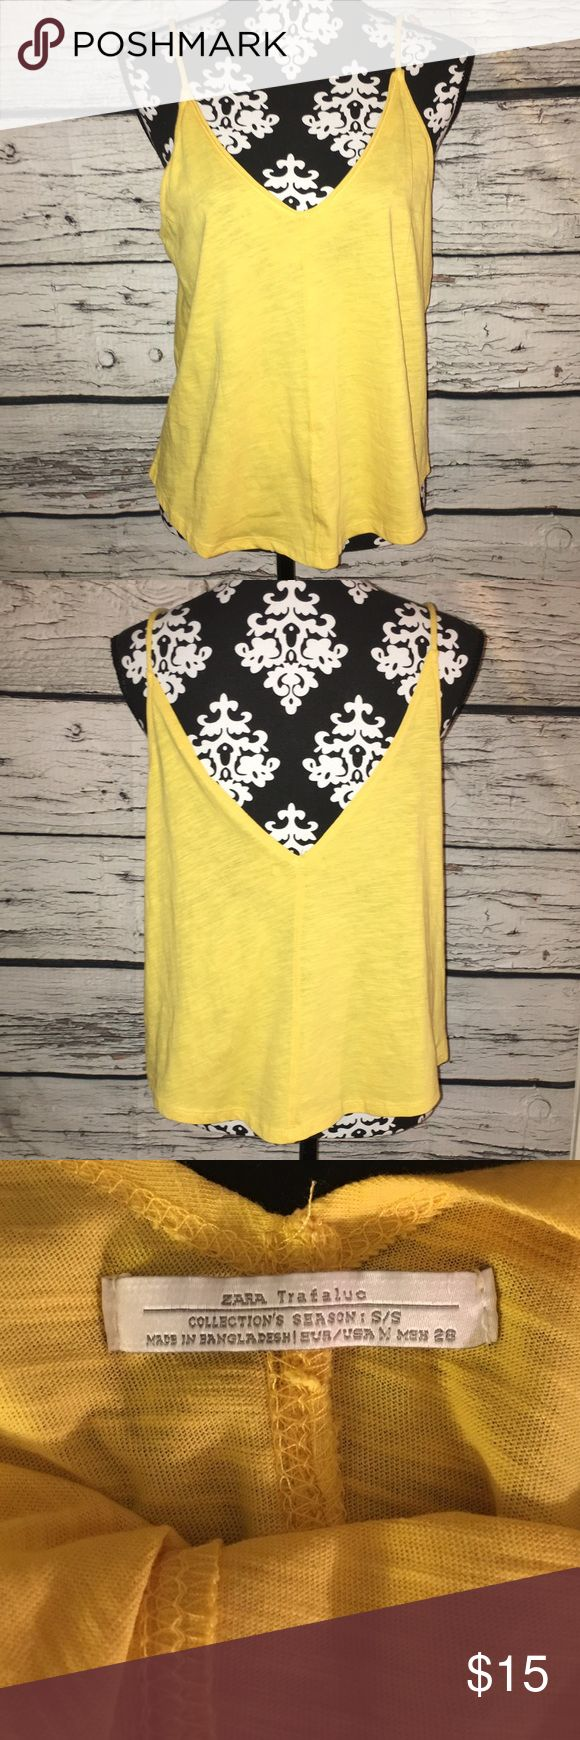 Zara Trafaluc Mustard Spaghetti Strap Tank Top 🌼 Excellent used condition, no flaws. Size small. Zara Tops Tank Tops